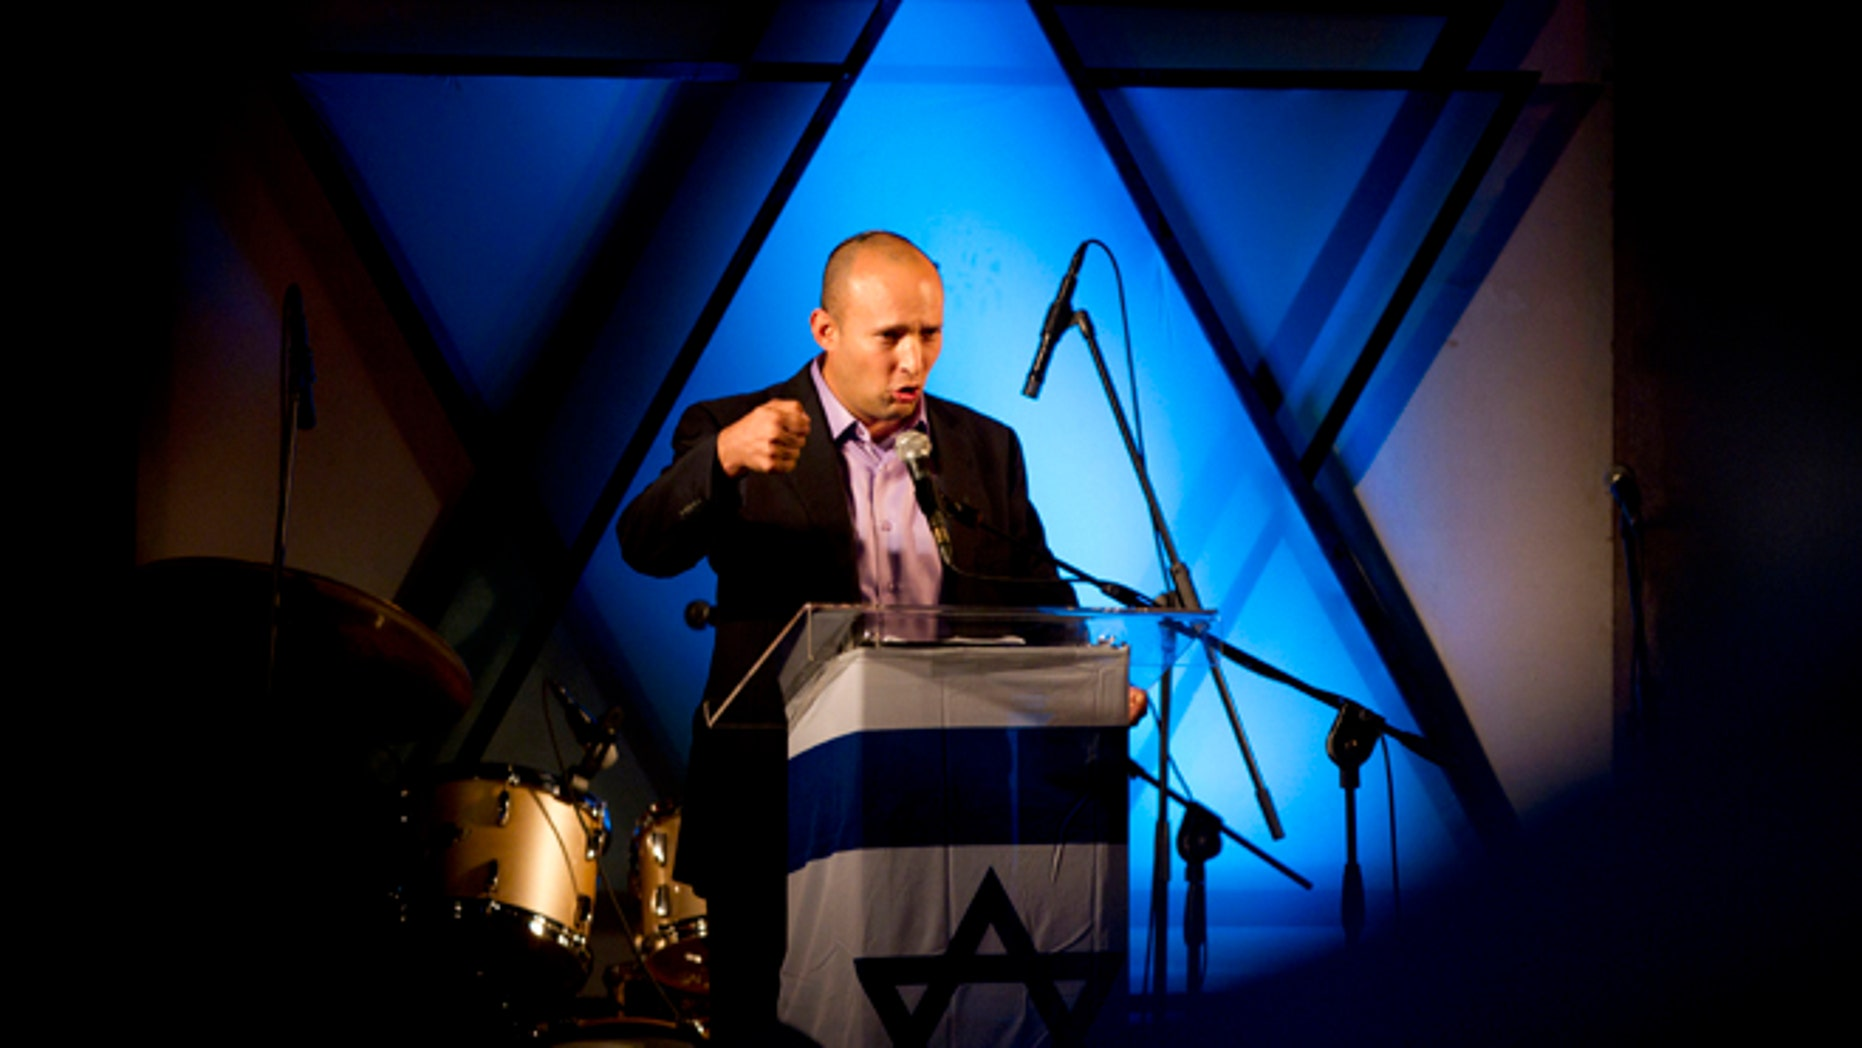 Dec. 26: Naftali Bennett, head of the Jewish Home party, speaks in Ashdod.